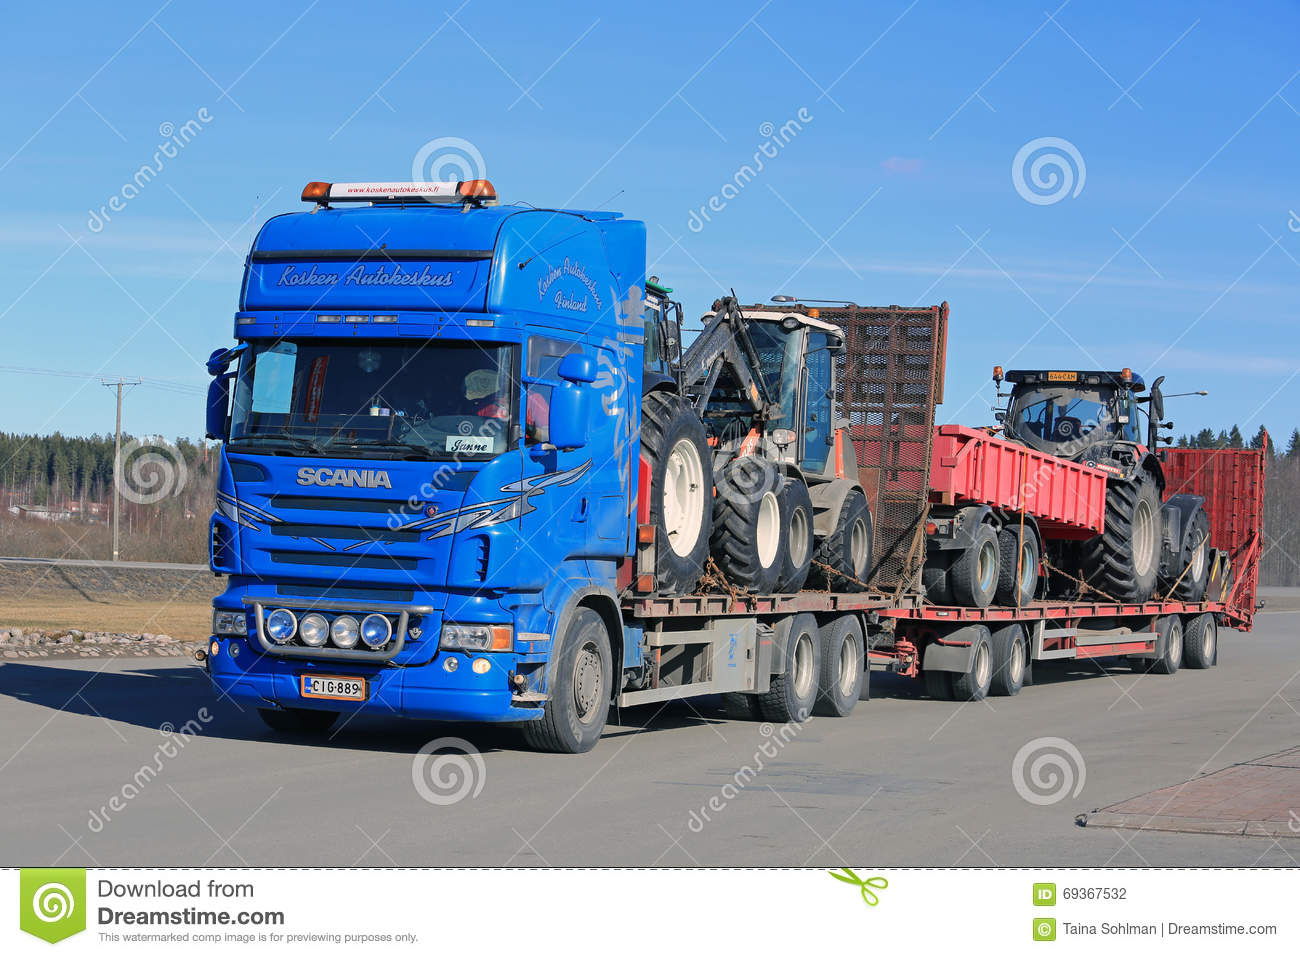 Tractor Trailer Truck Accessories : Blue scania truck hauls agricultural equipment editorial